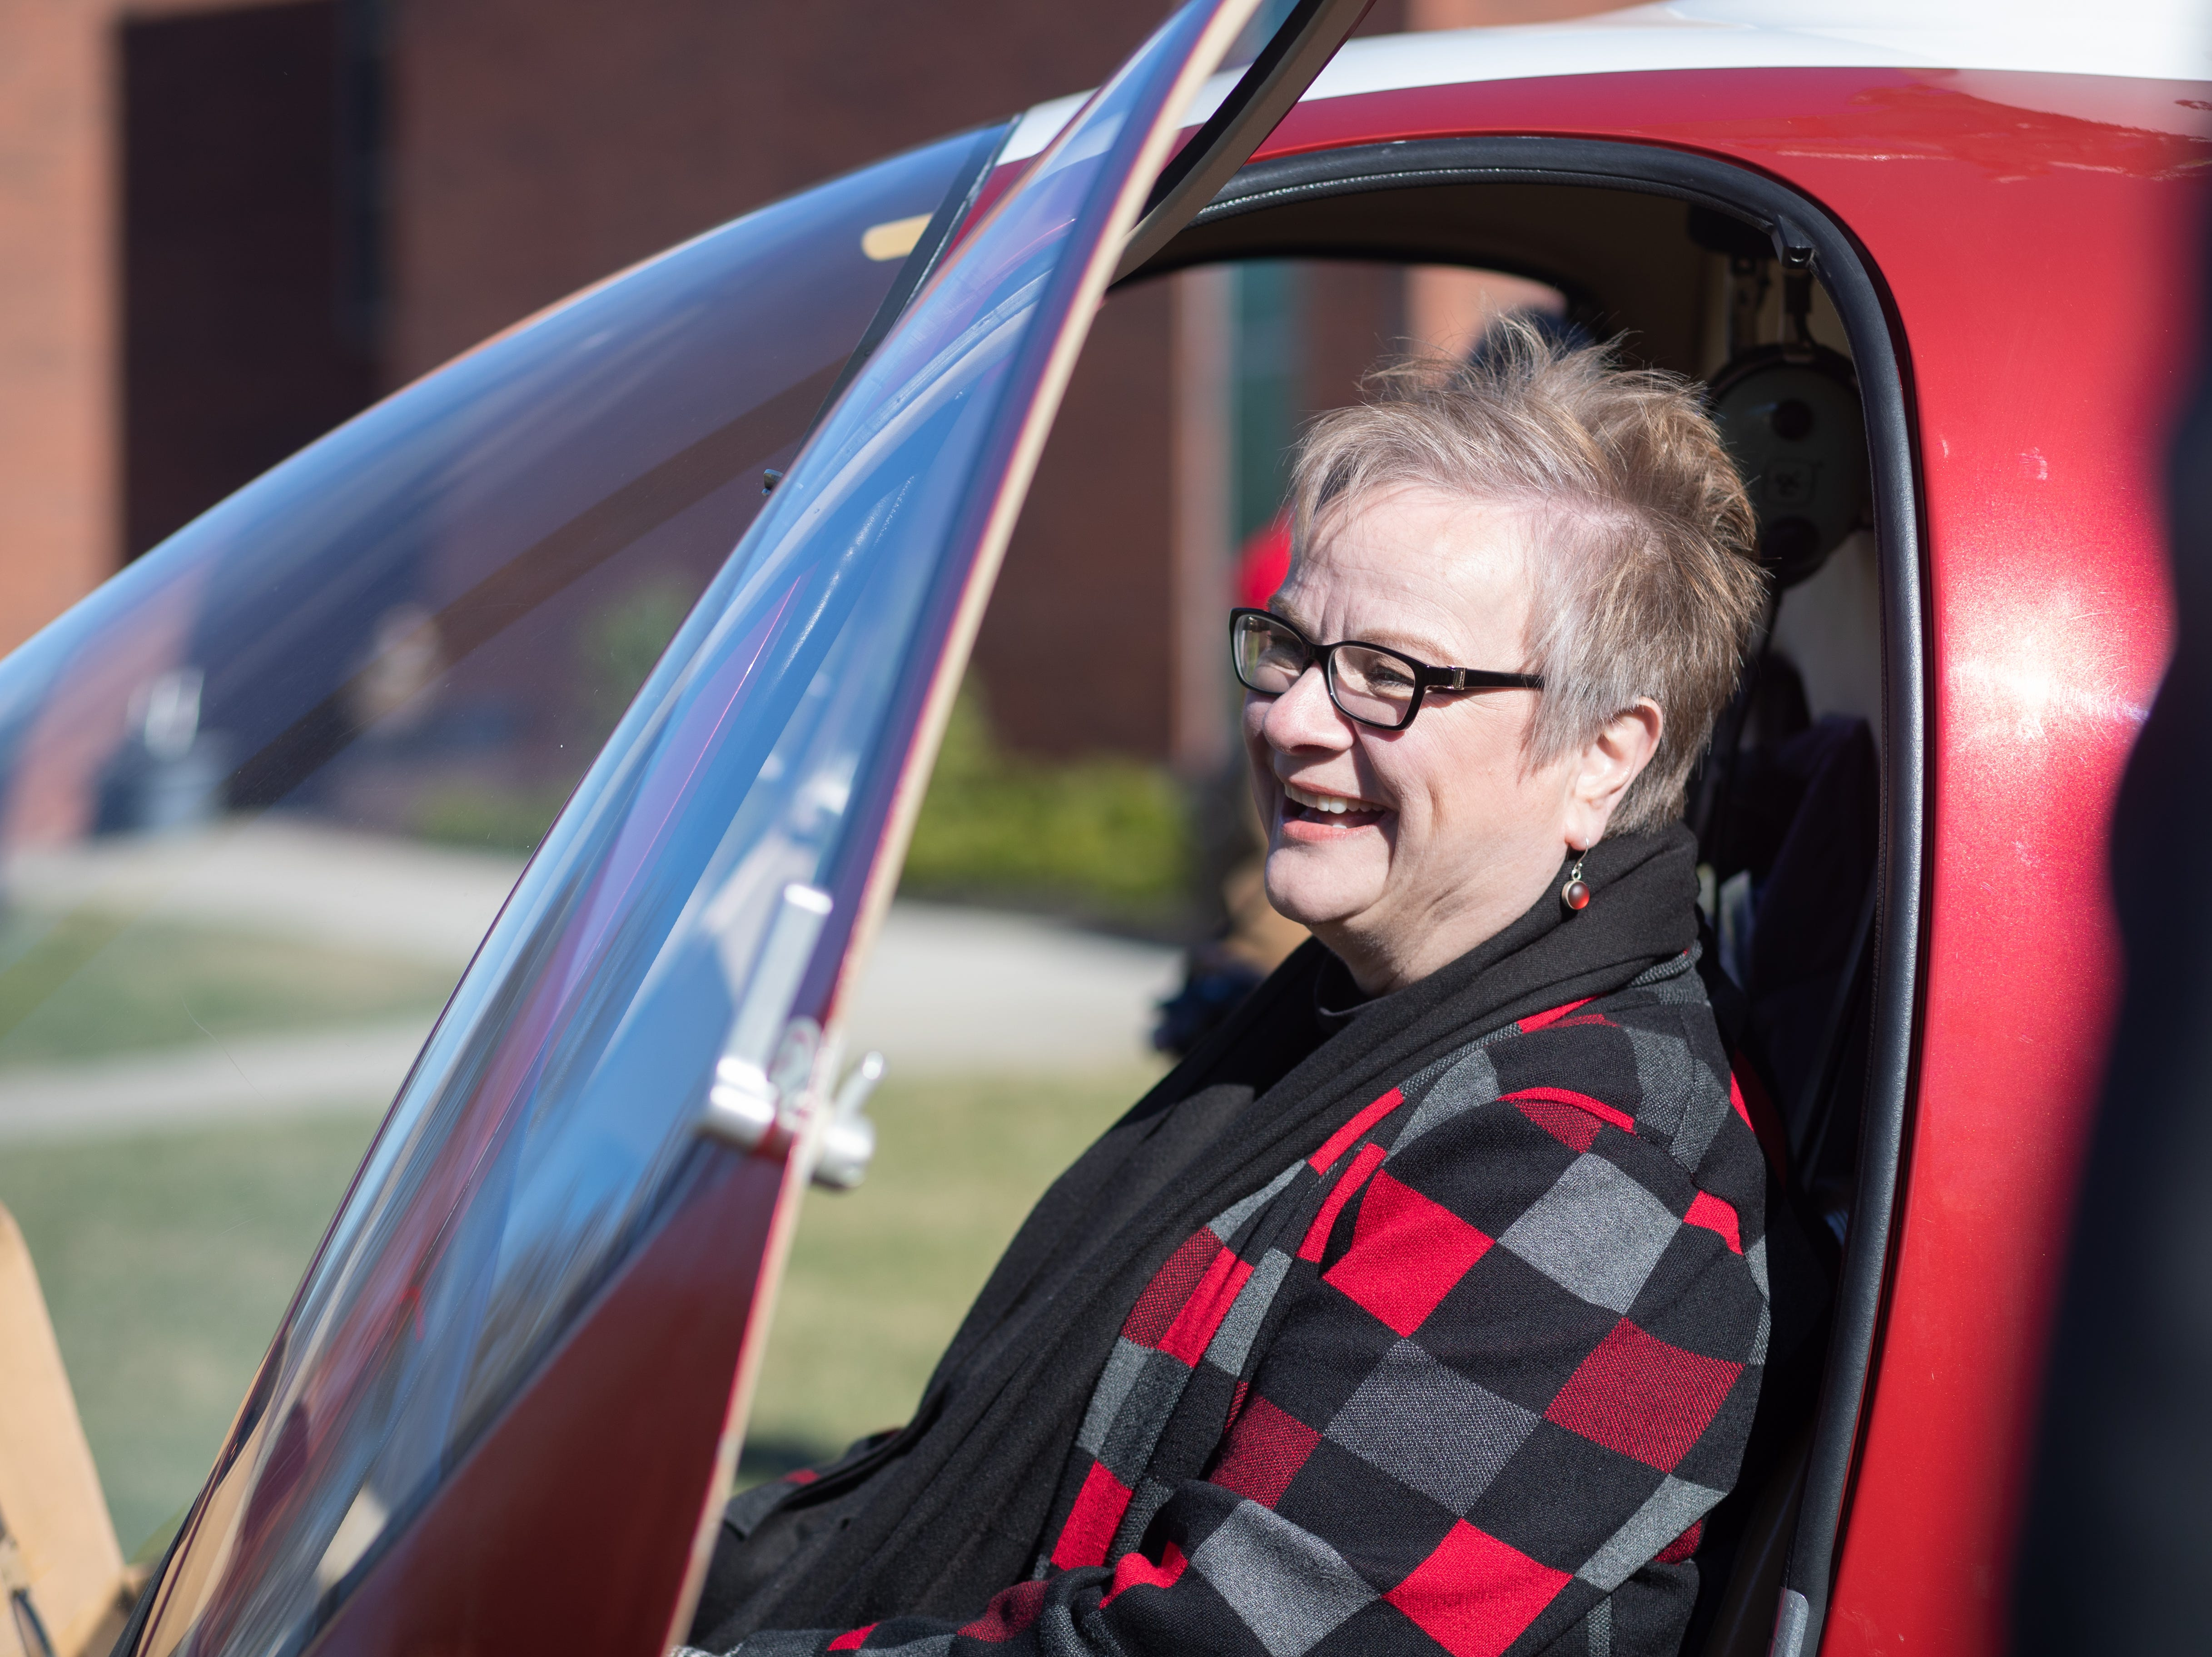 APSU President Alisa White inside the GOV 1 helicopter at Austin Peay State University on Wednesday, Jan. 9, 2019.